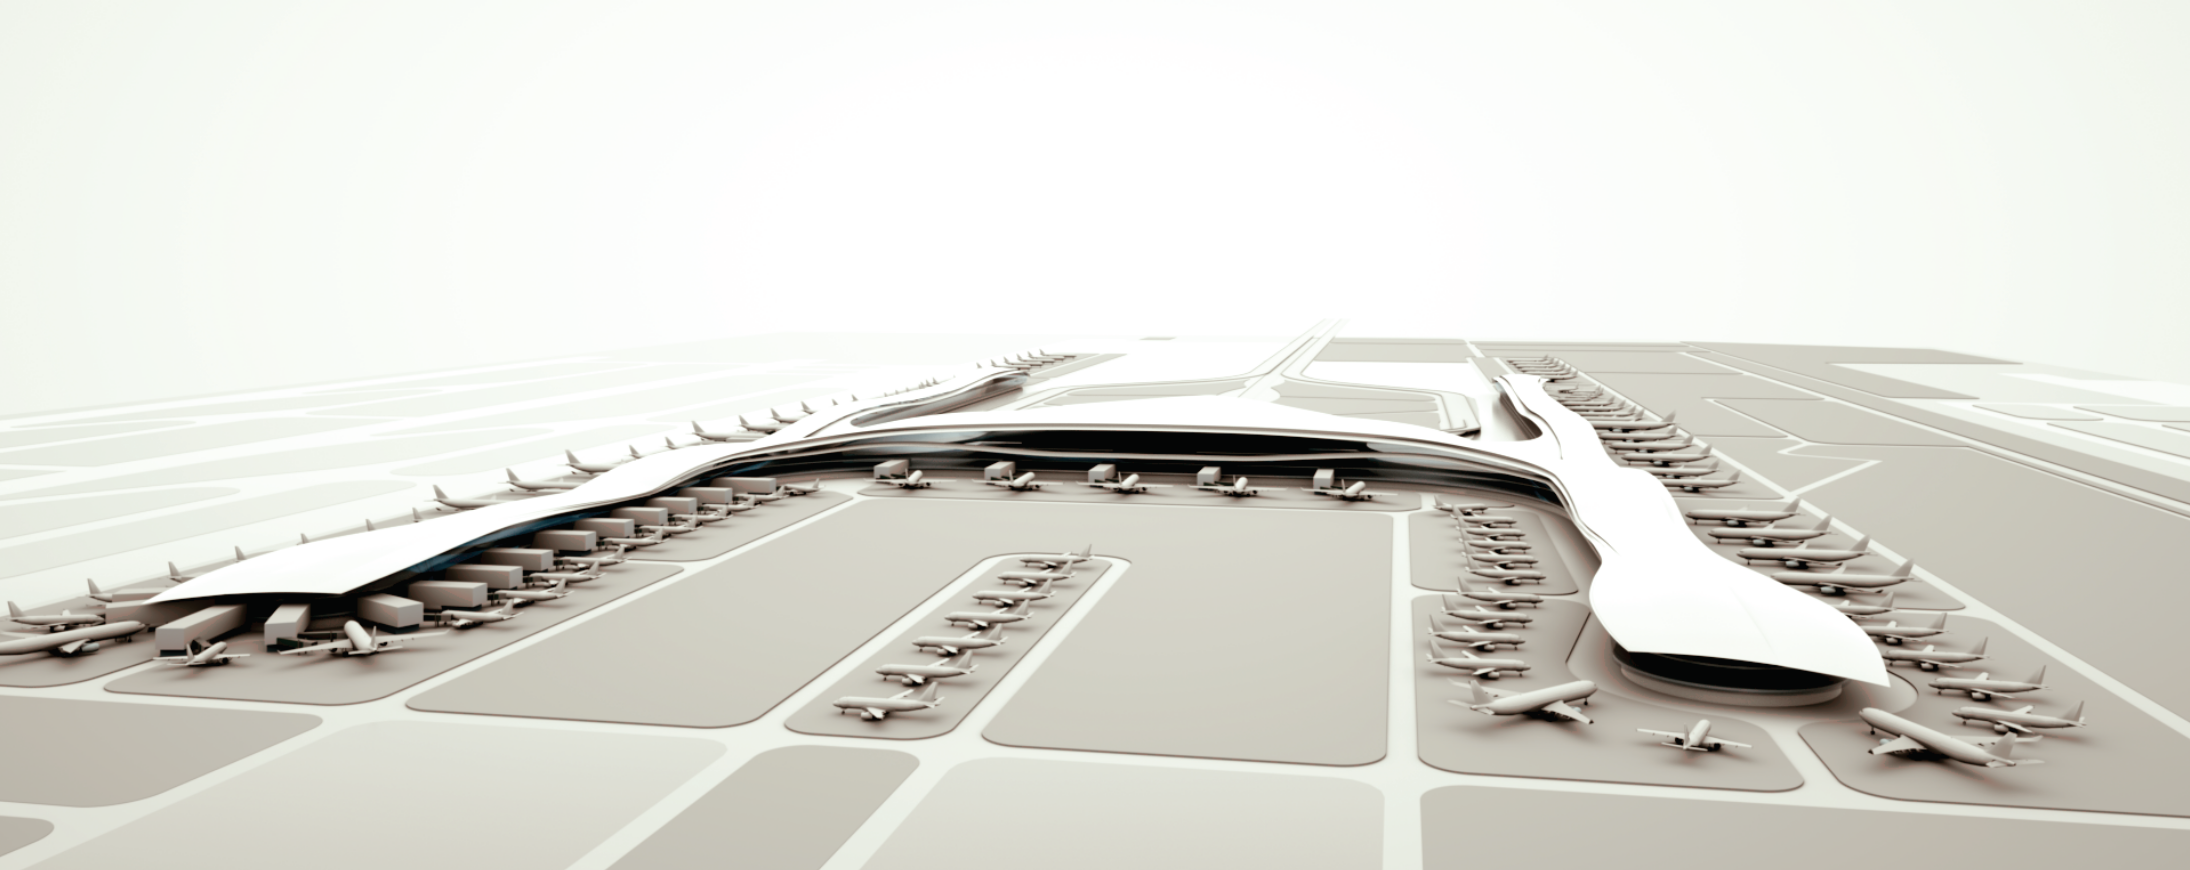 Hks Architects Airport Design Architecture Design Research